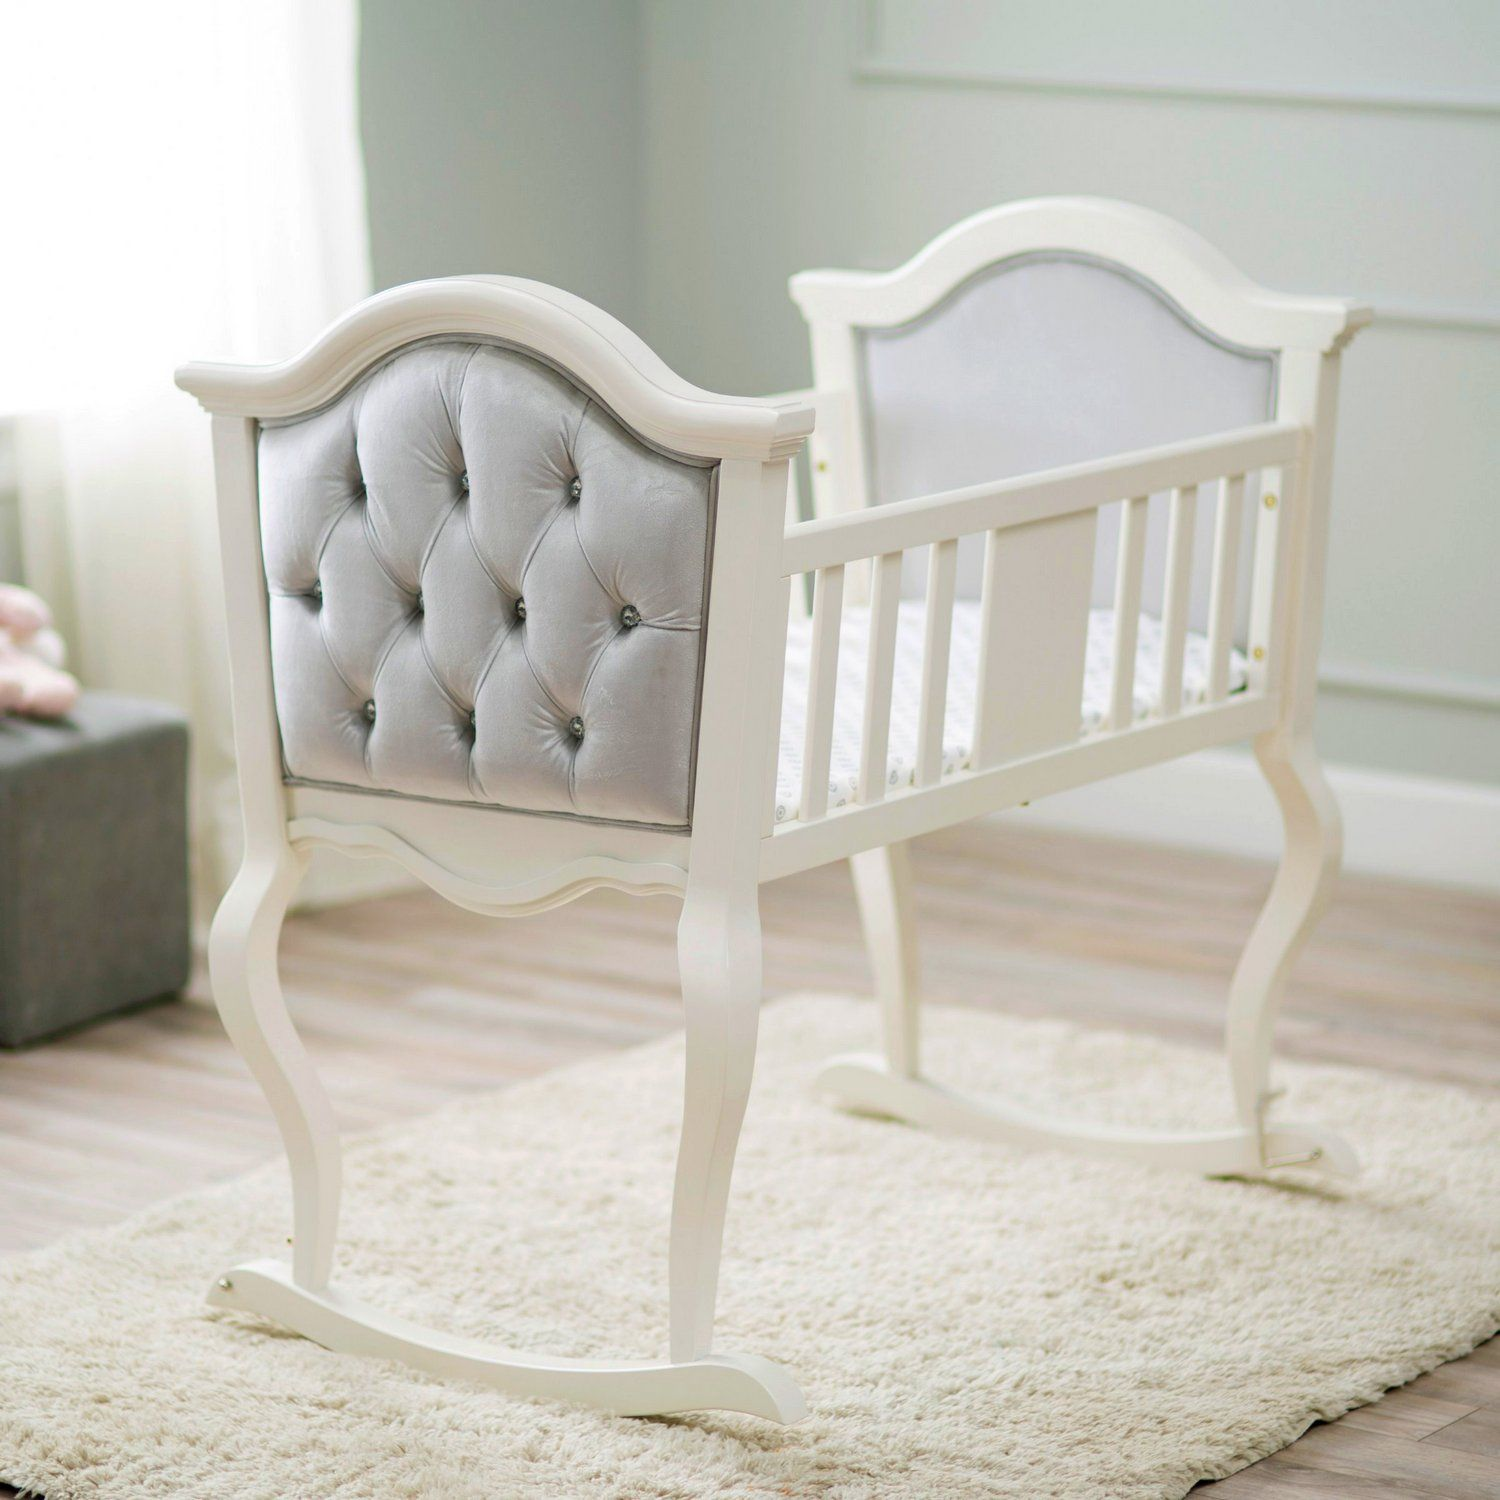 White Wooden Bassinets Baby products Pinterest